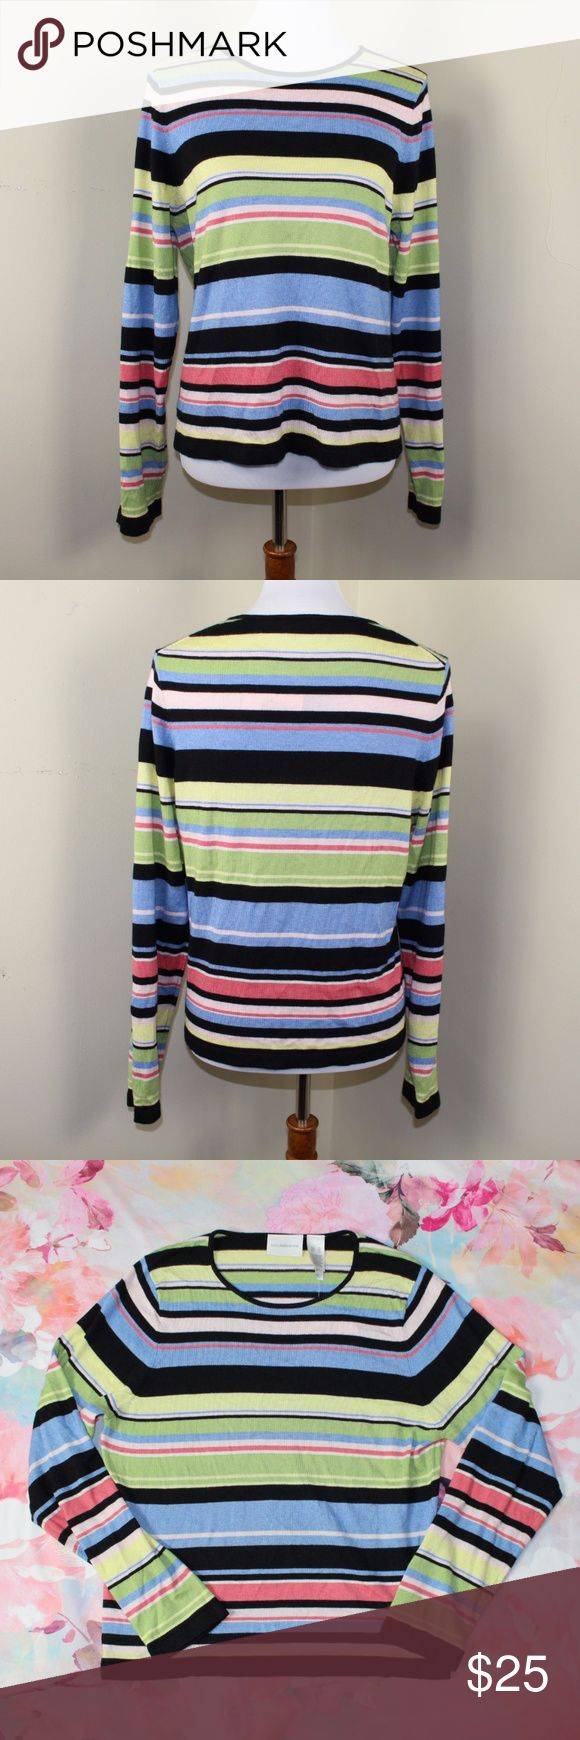 NWT Liz Claiborne Colorful Striped Top Size XL New with tags, never worn, perfect condition. Super soft, material is partially Angora Rabbit fur.   My bundle discount is 15% off 2+!! Feel free to ask any questions, additional measurements or photos.  Please submit offers through the offer button. Liz Claiborne Tops Tees - Long Sleeve